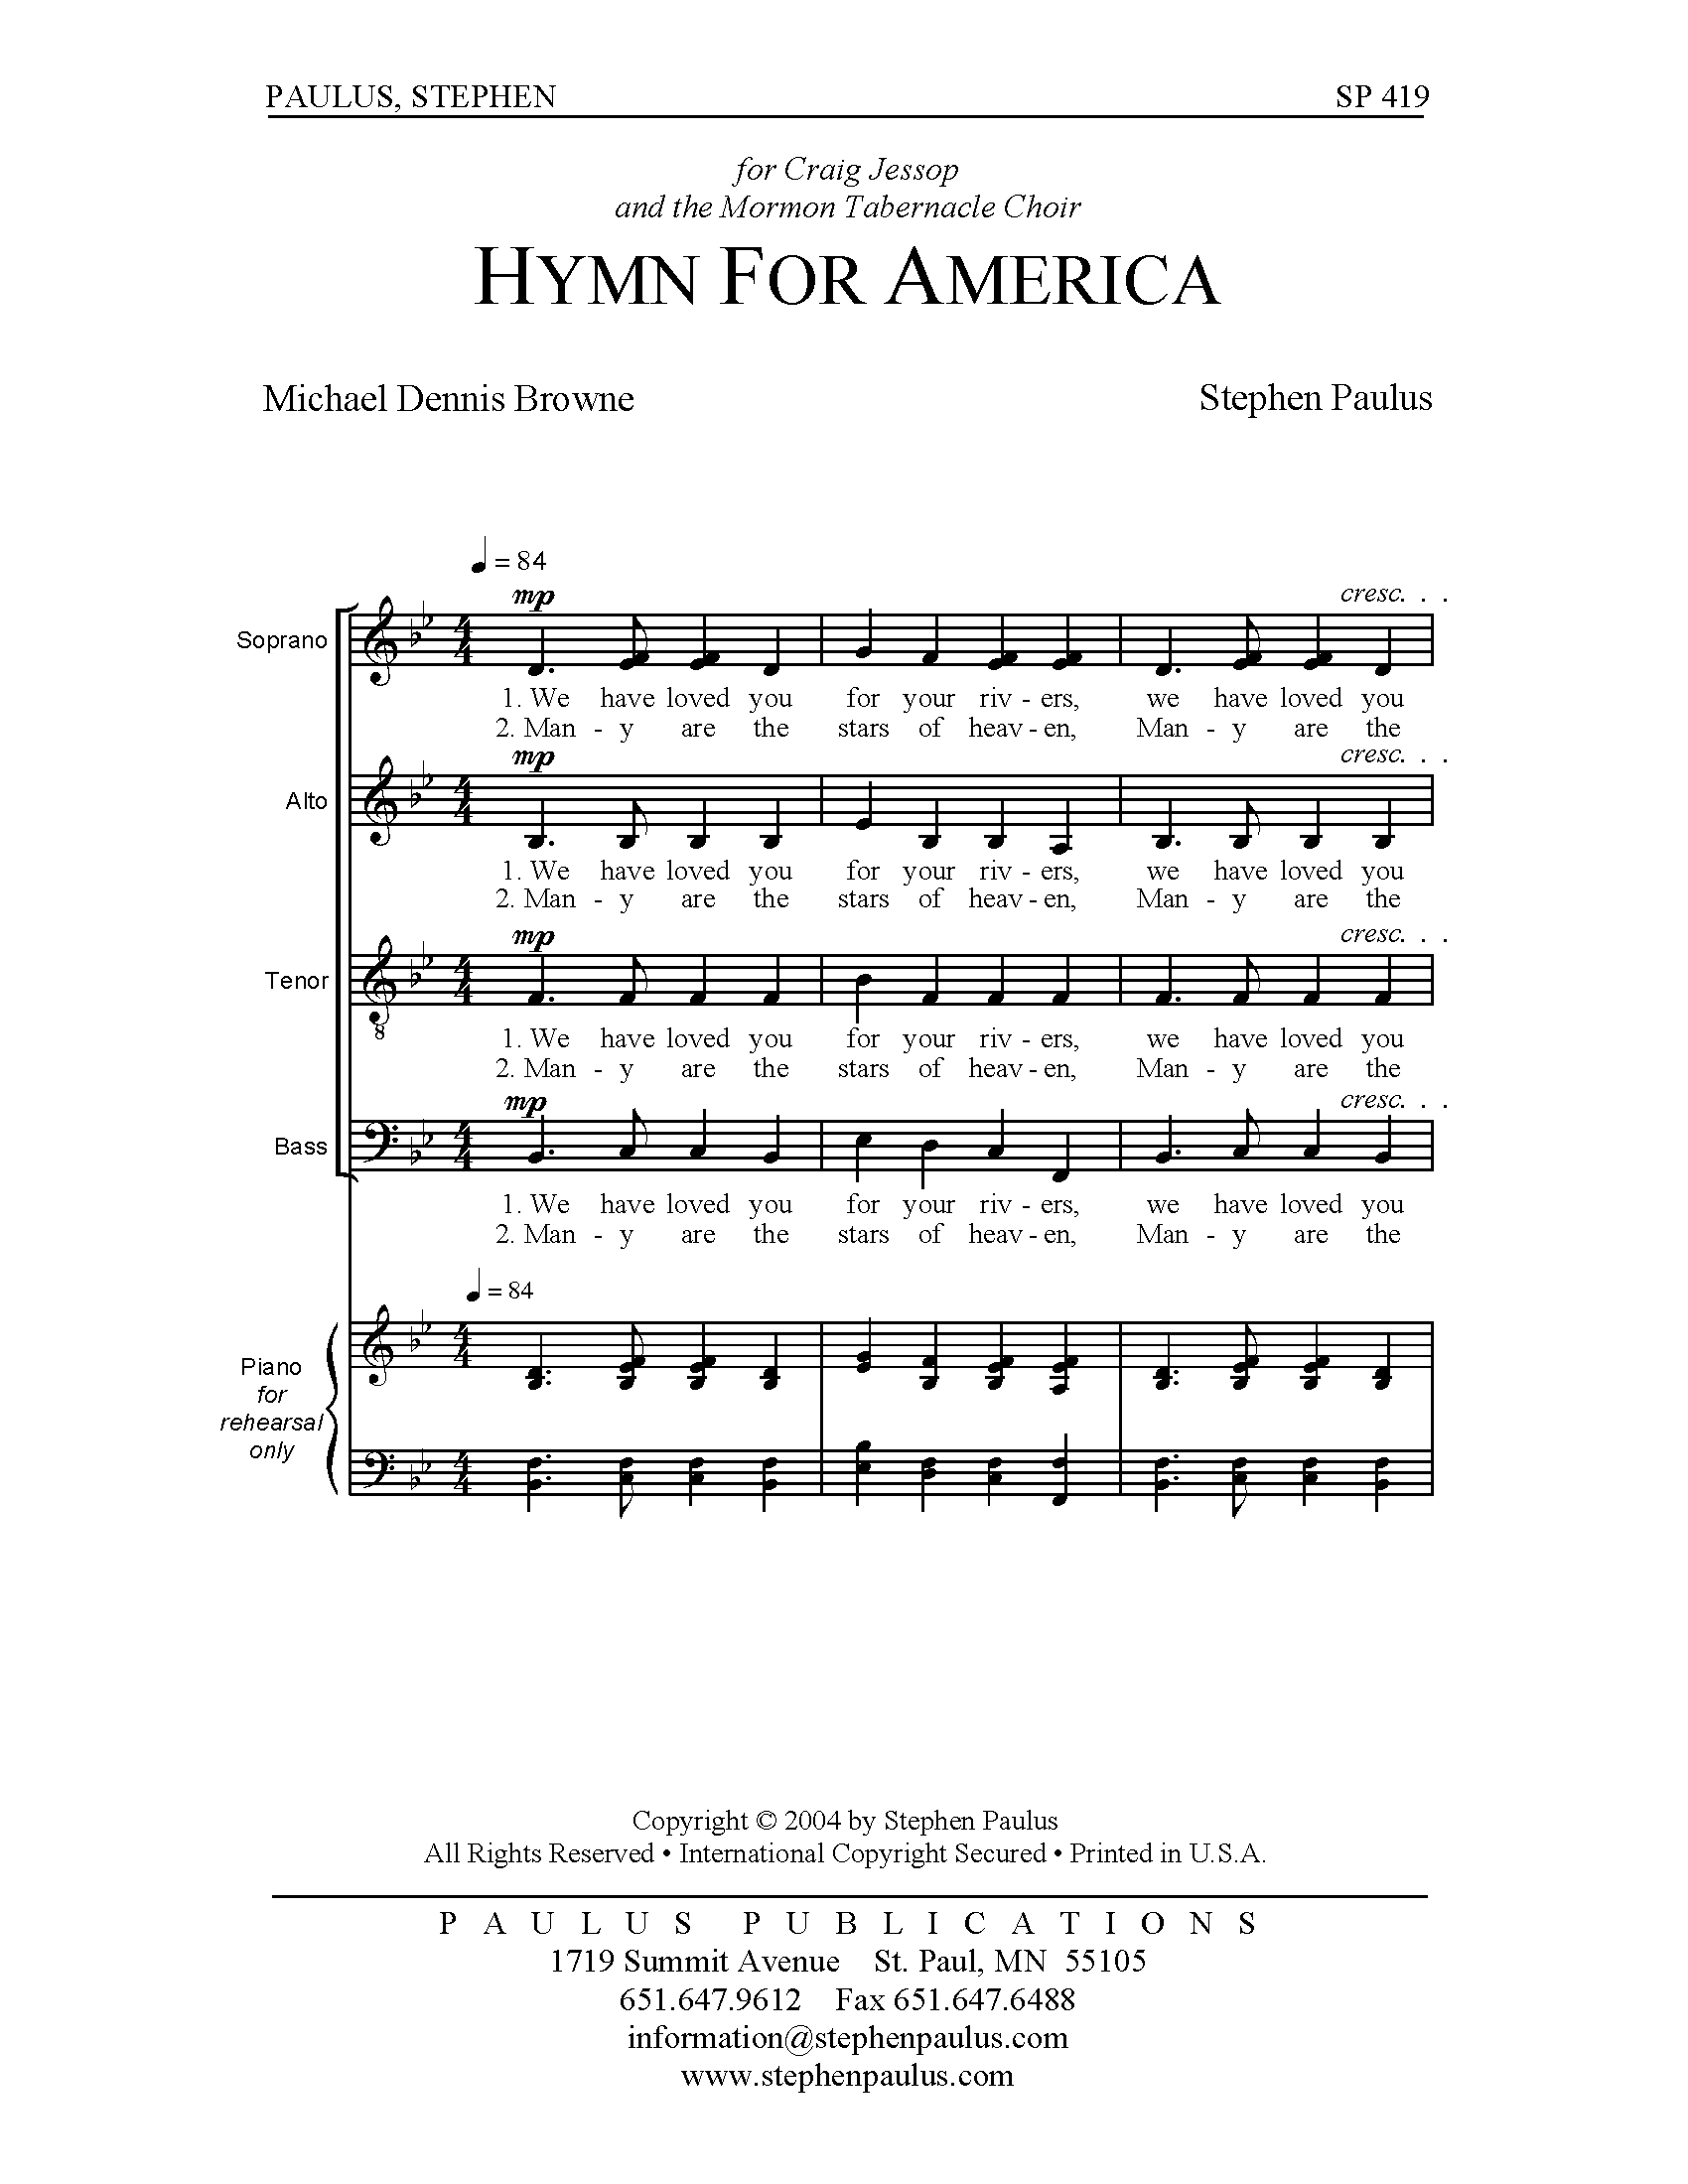 Hymn for America for SATB Chorus, a cappella